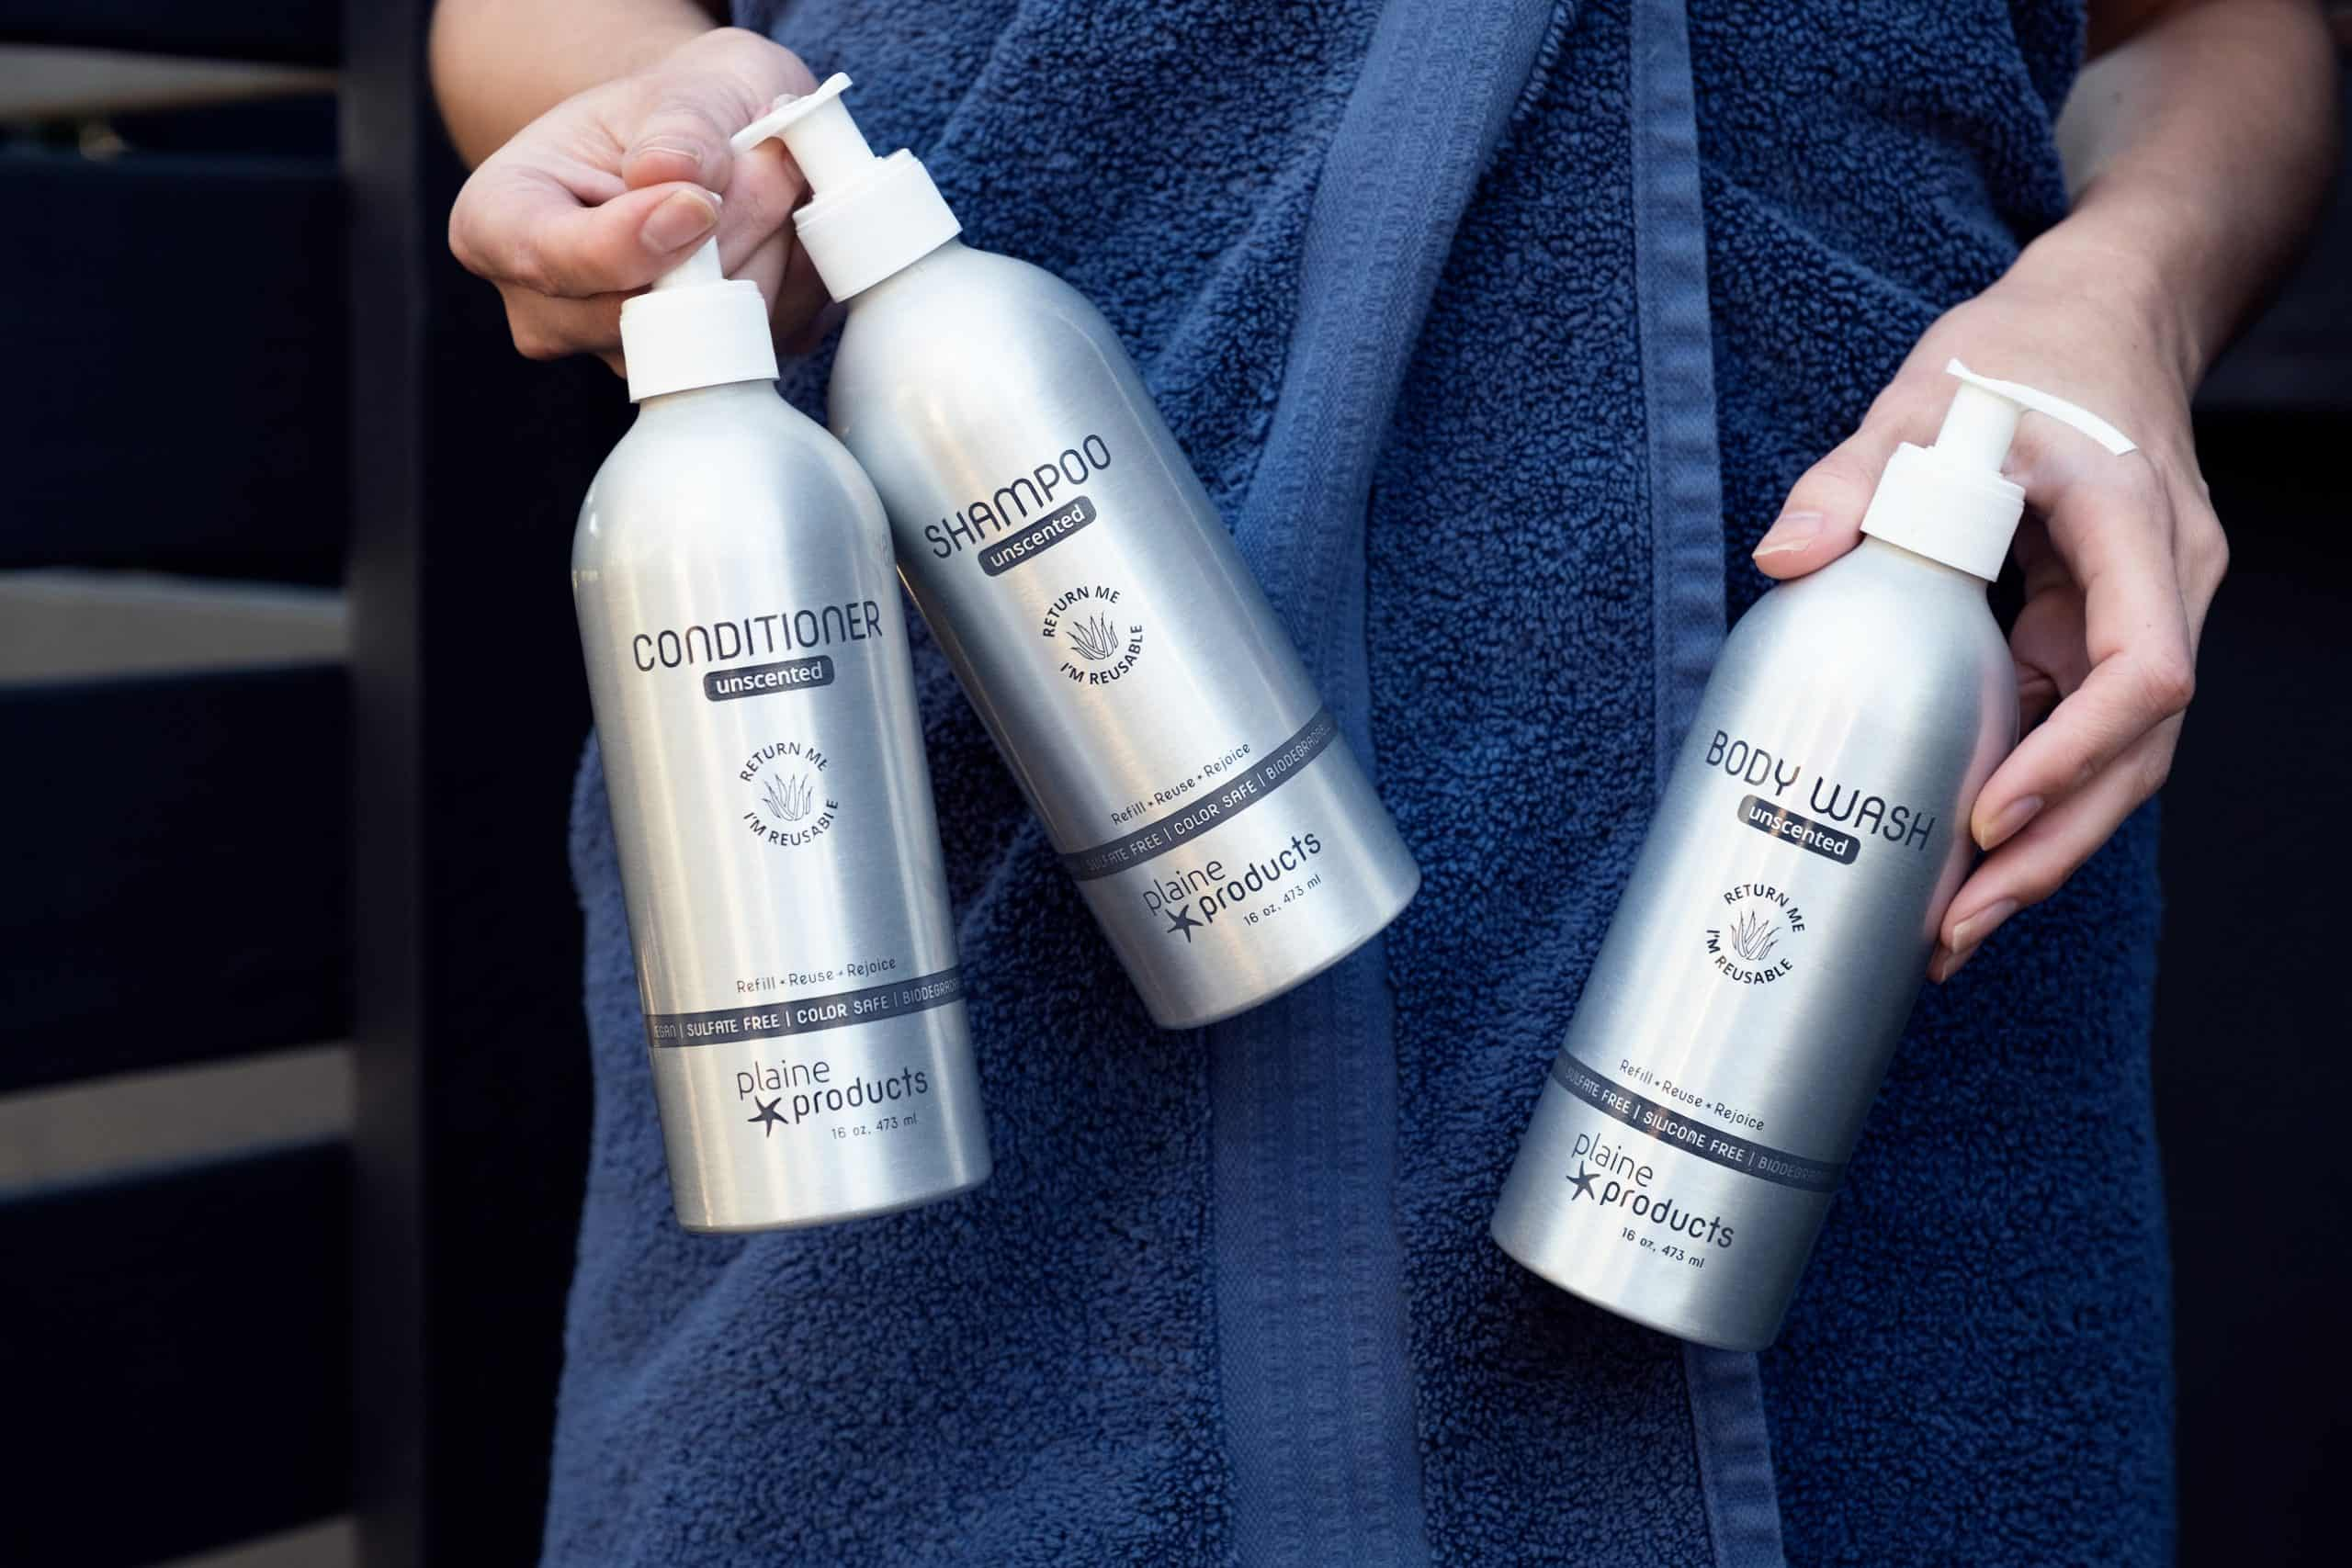 Unscented Shampoo, Conditioner, and Body Wash held by a woman wrapped in a blue towel